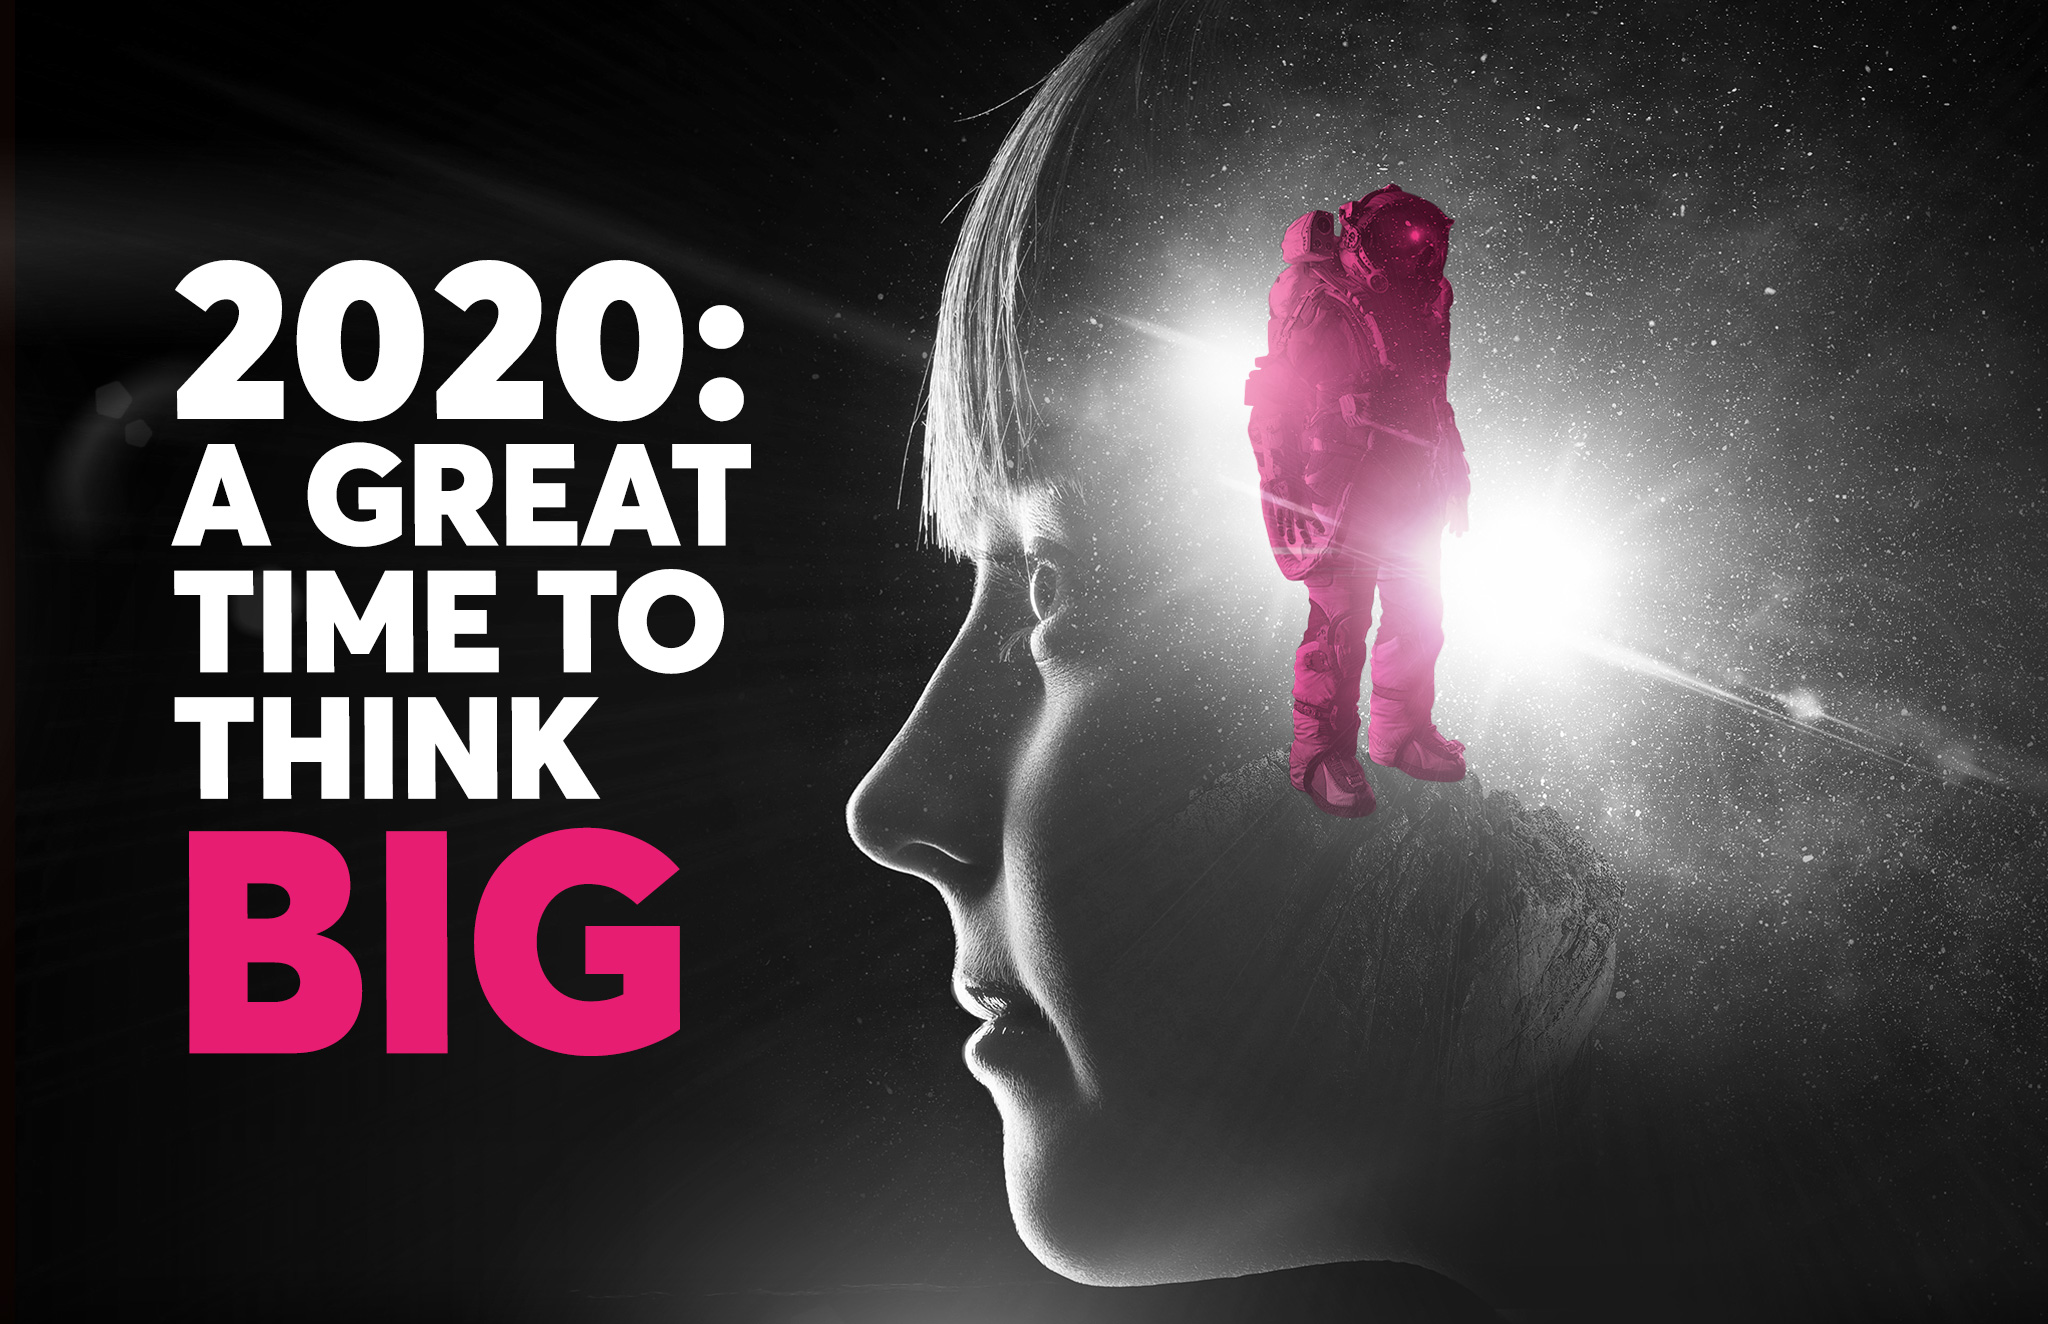 2020: A great time to think BIG - Scale up your business ...